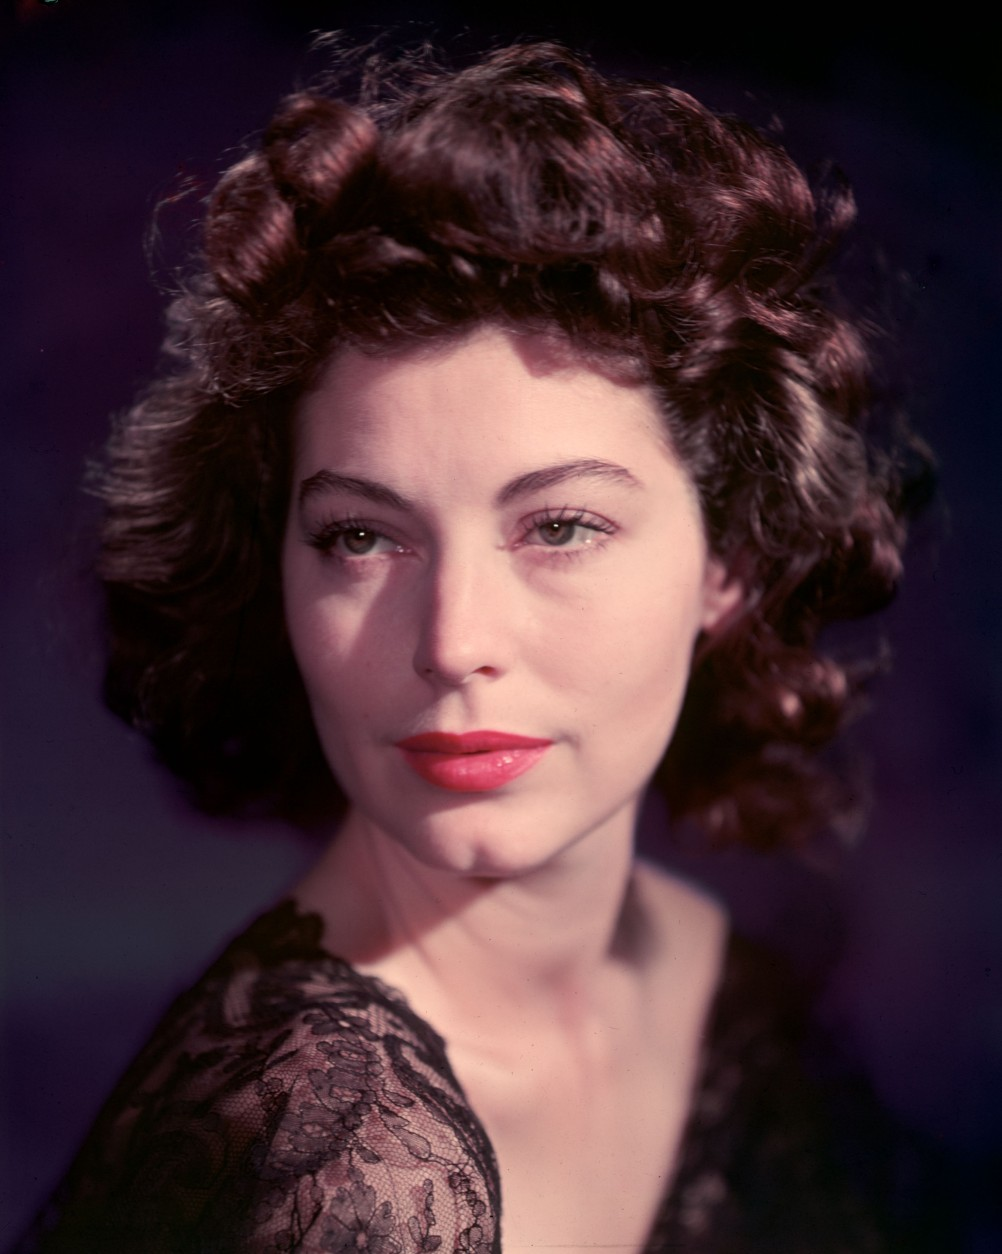 Ava Gardner (1922 - 1990), the sensuous Hollywood star and film actress. She appeared in 'The Killers' (1946), 'Pandora & The Flying Dutchman' (1951) and 'The Barefoot Contessa' (1954).   (Photo by Baron/Getty Images)